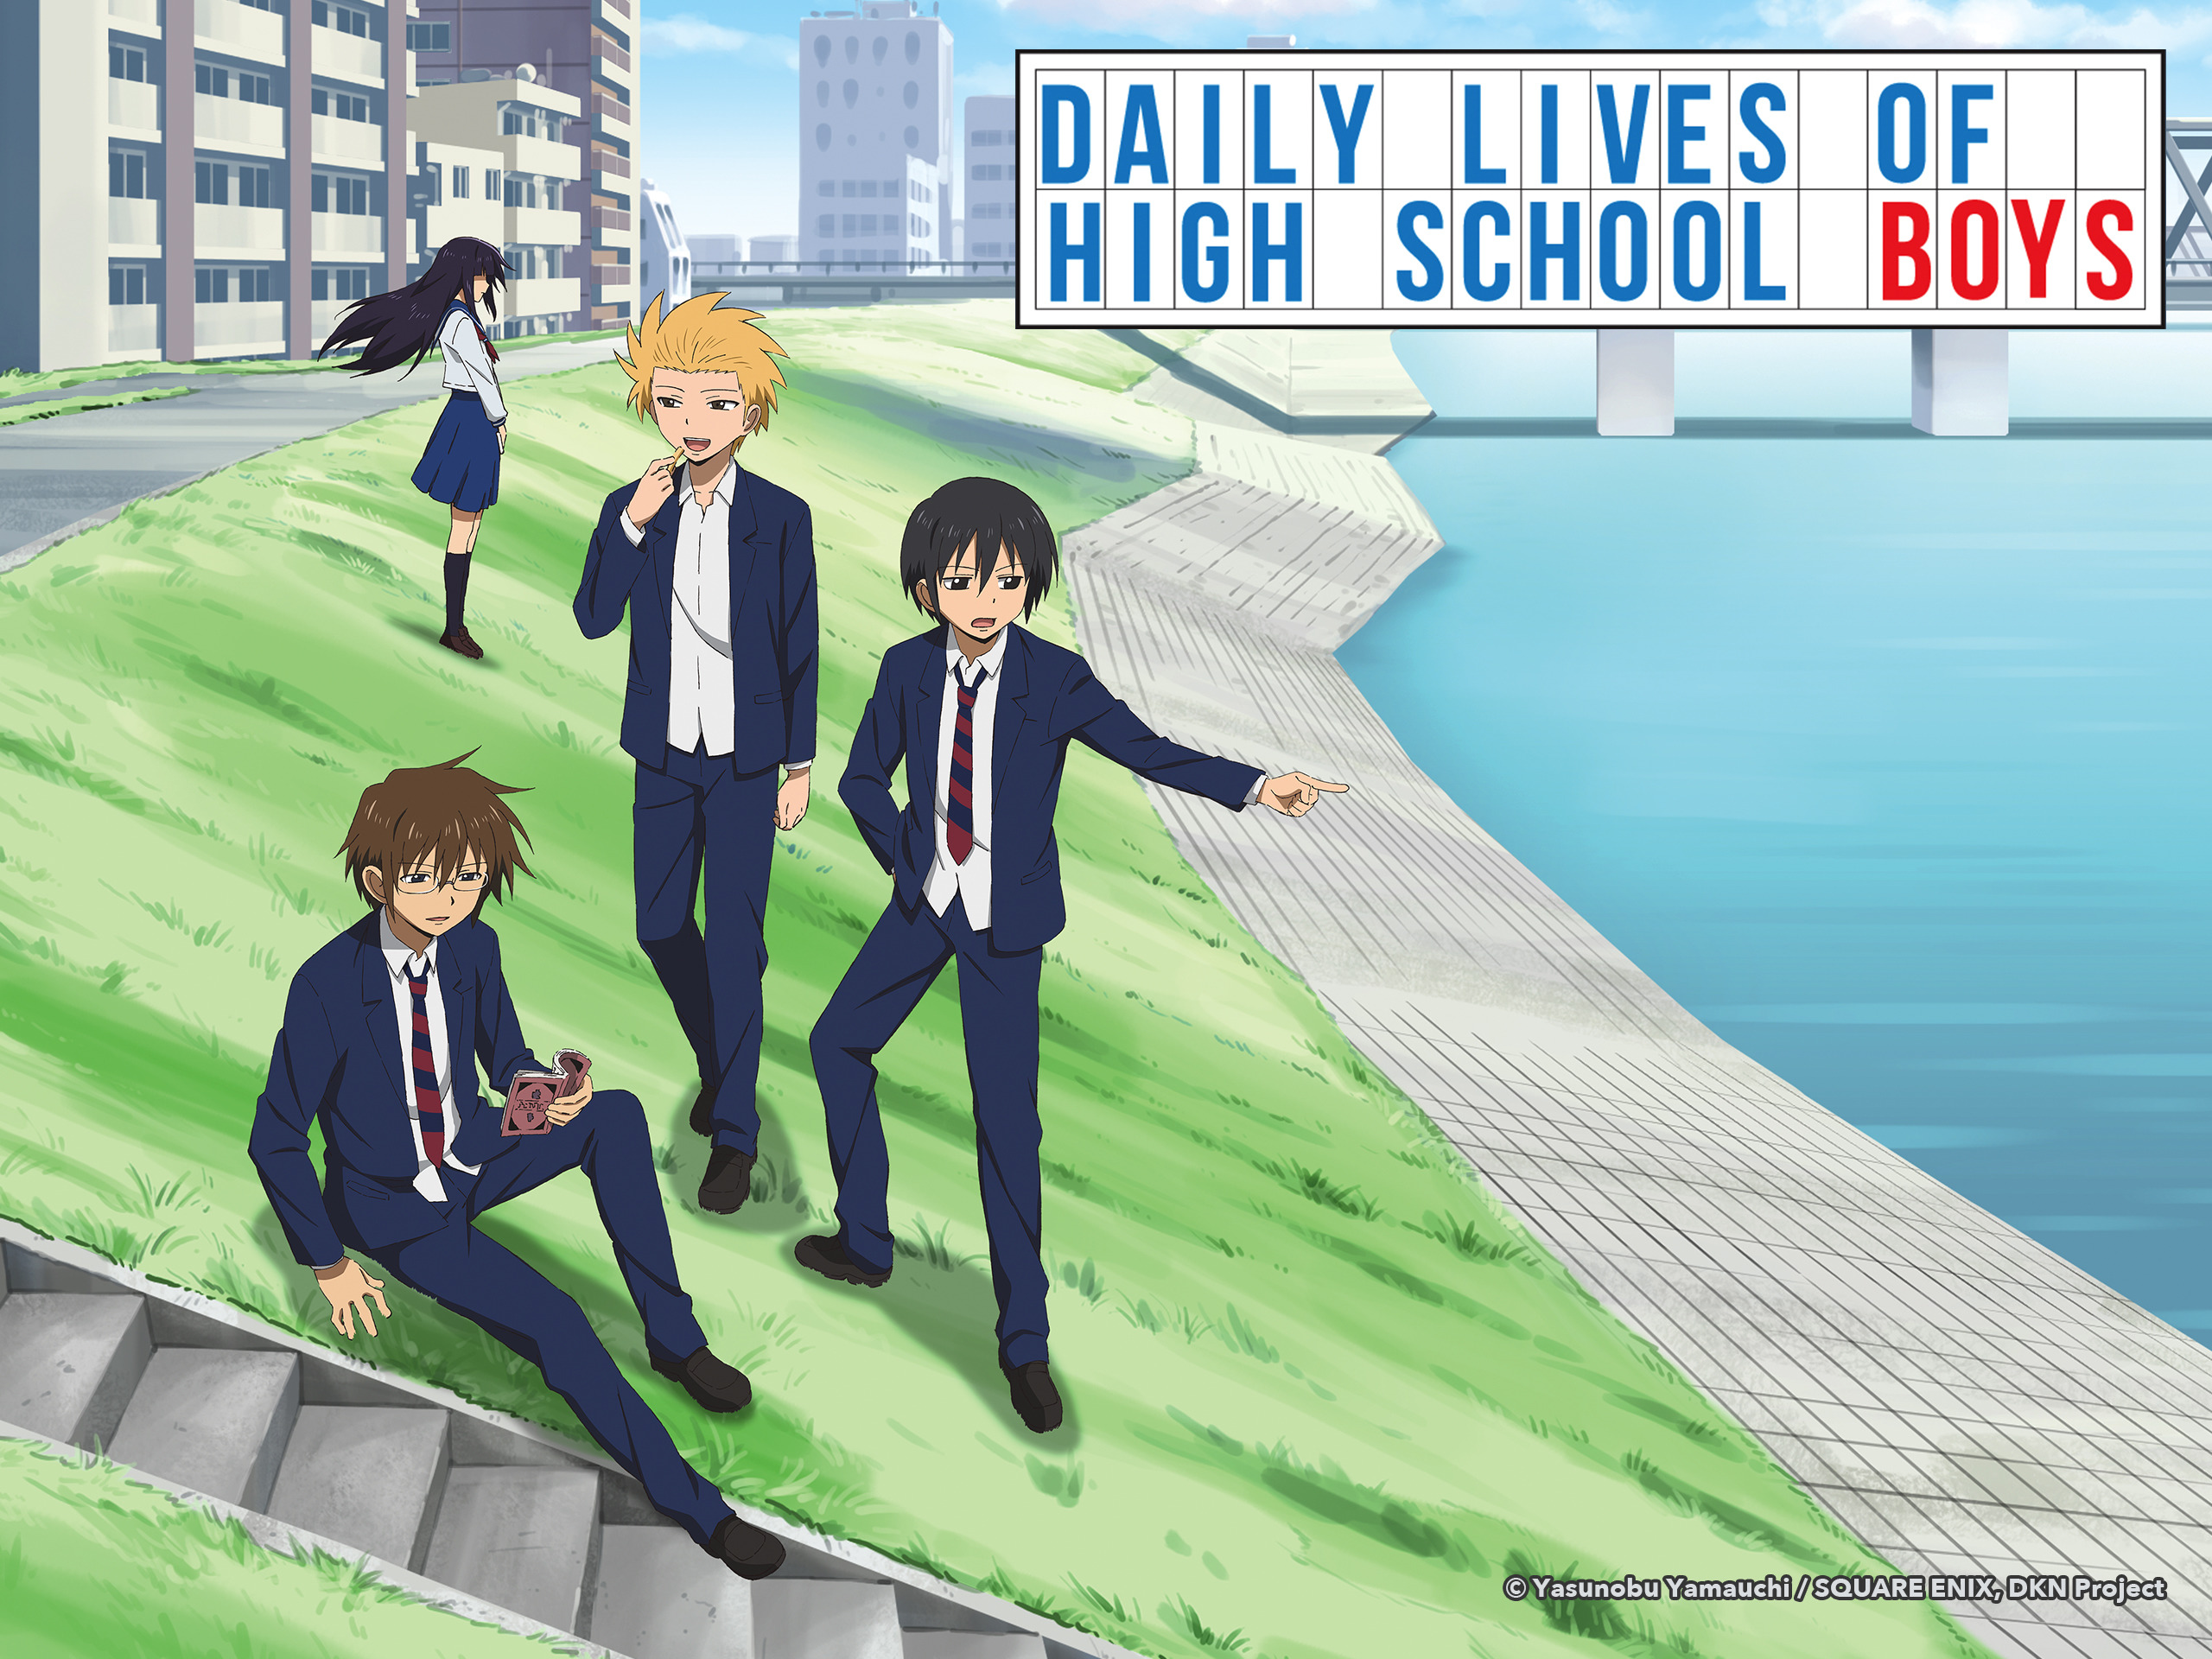 Watch Daily Lives of High School Boys Season 1 Episode 1: Daily